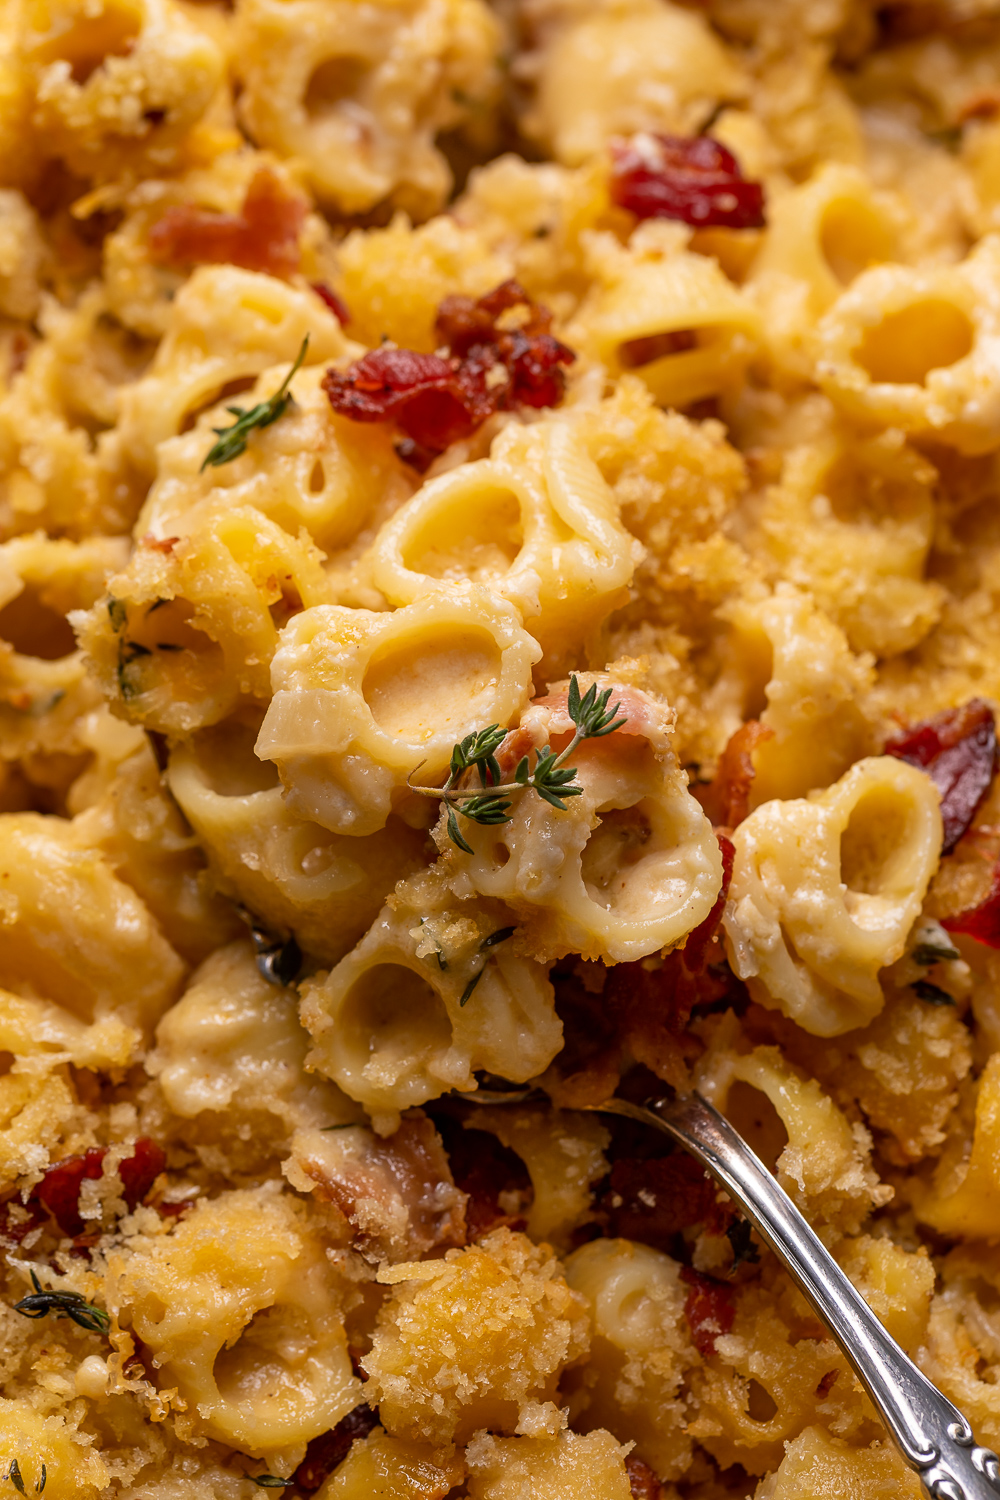 Elevated macaroni and cheese with bacon and gruyère is the perfect side-dish! It's great for special occasions like Thanksgiving and Christmas, or any night you're craving comfort food!